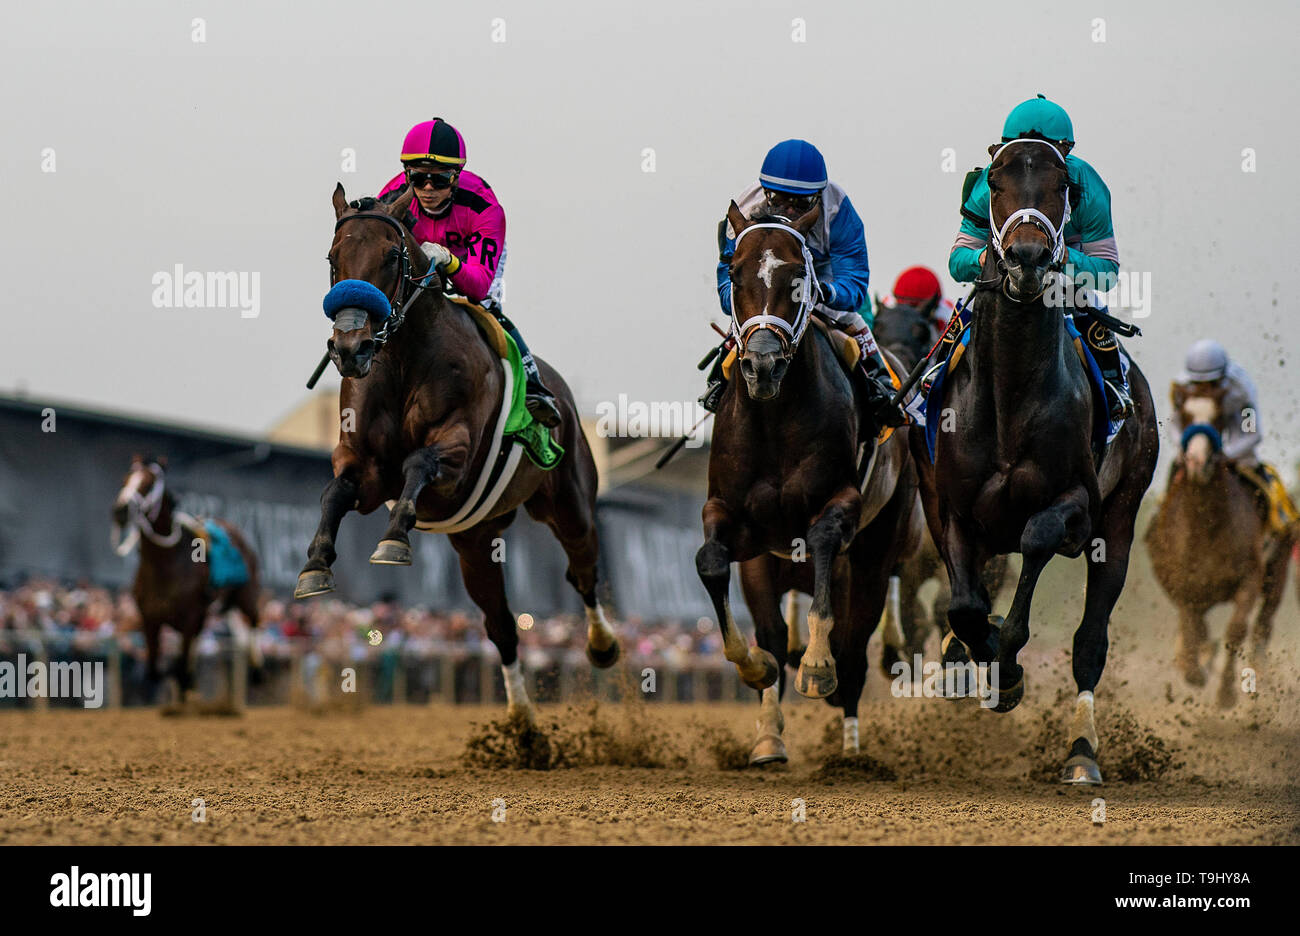 Baltimore, Maryland, USA. 18th May, 2019. MAY 18: Anothertwistafate with Jose Ortiz up jumps the tram tracks as he races next to Market King with Javier Castellano and Warriors Charge in the Preakness Stakes at Pimlico Racecourse in Baltimore, Maryland on May 18, 2019. Evers/Eclipse Sportswire/CSM/Alamy Live News - Stock Image